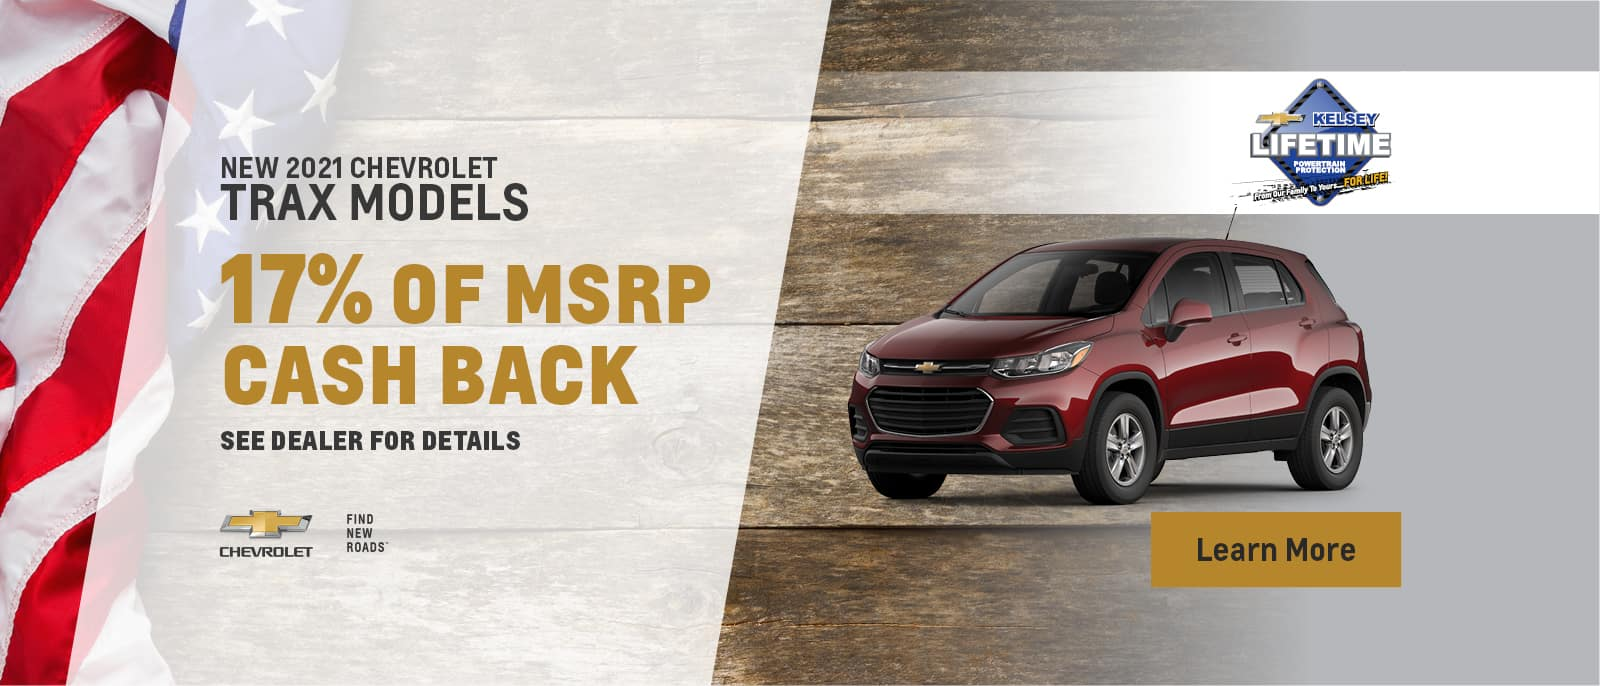 2021 Chevy Trax Models